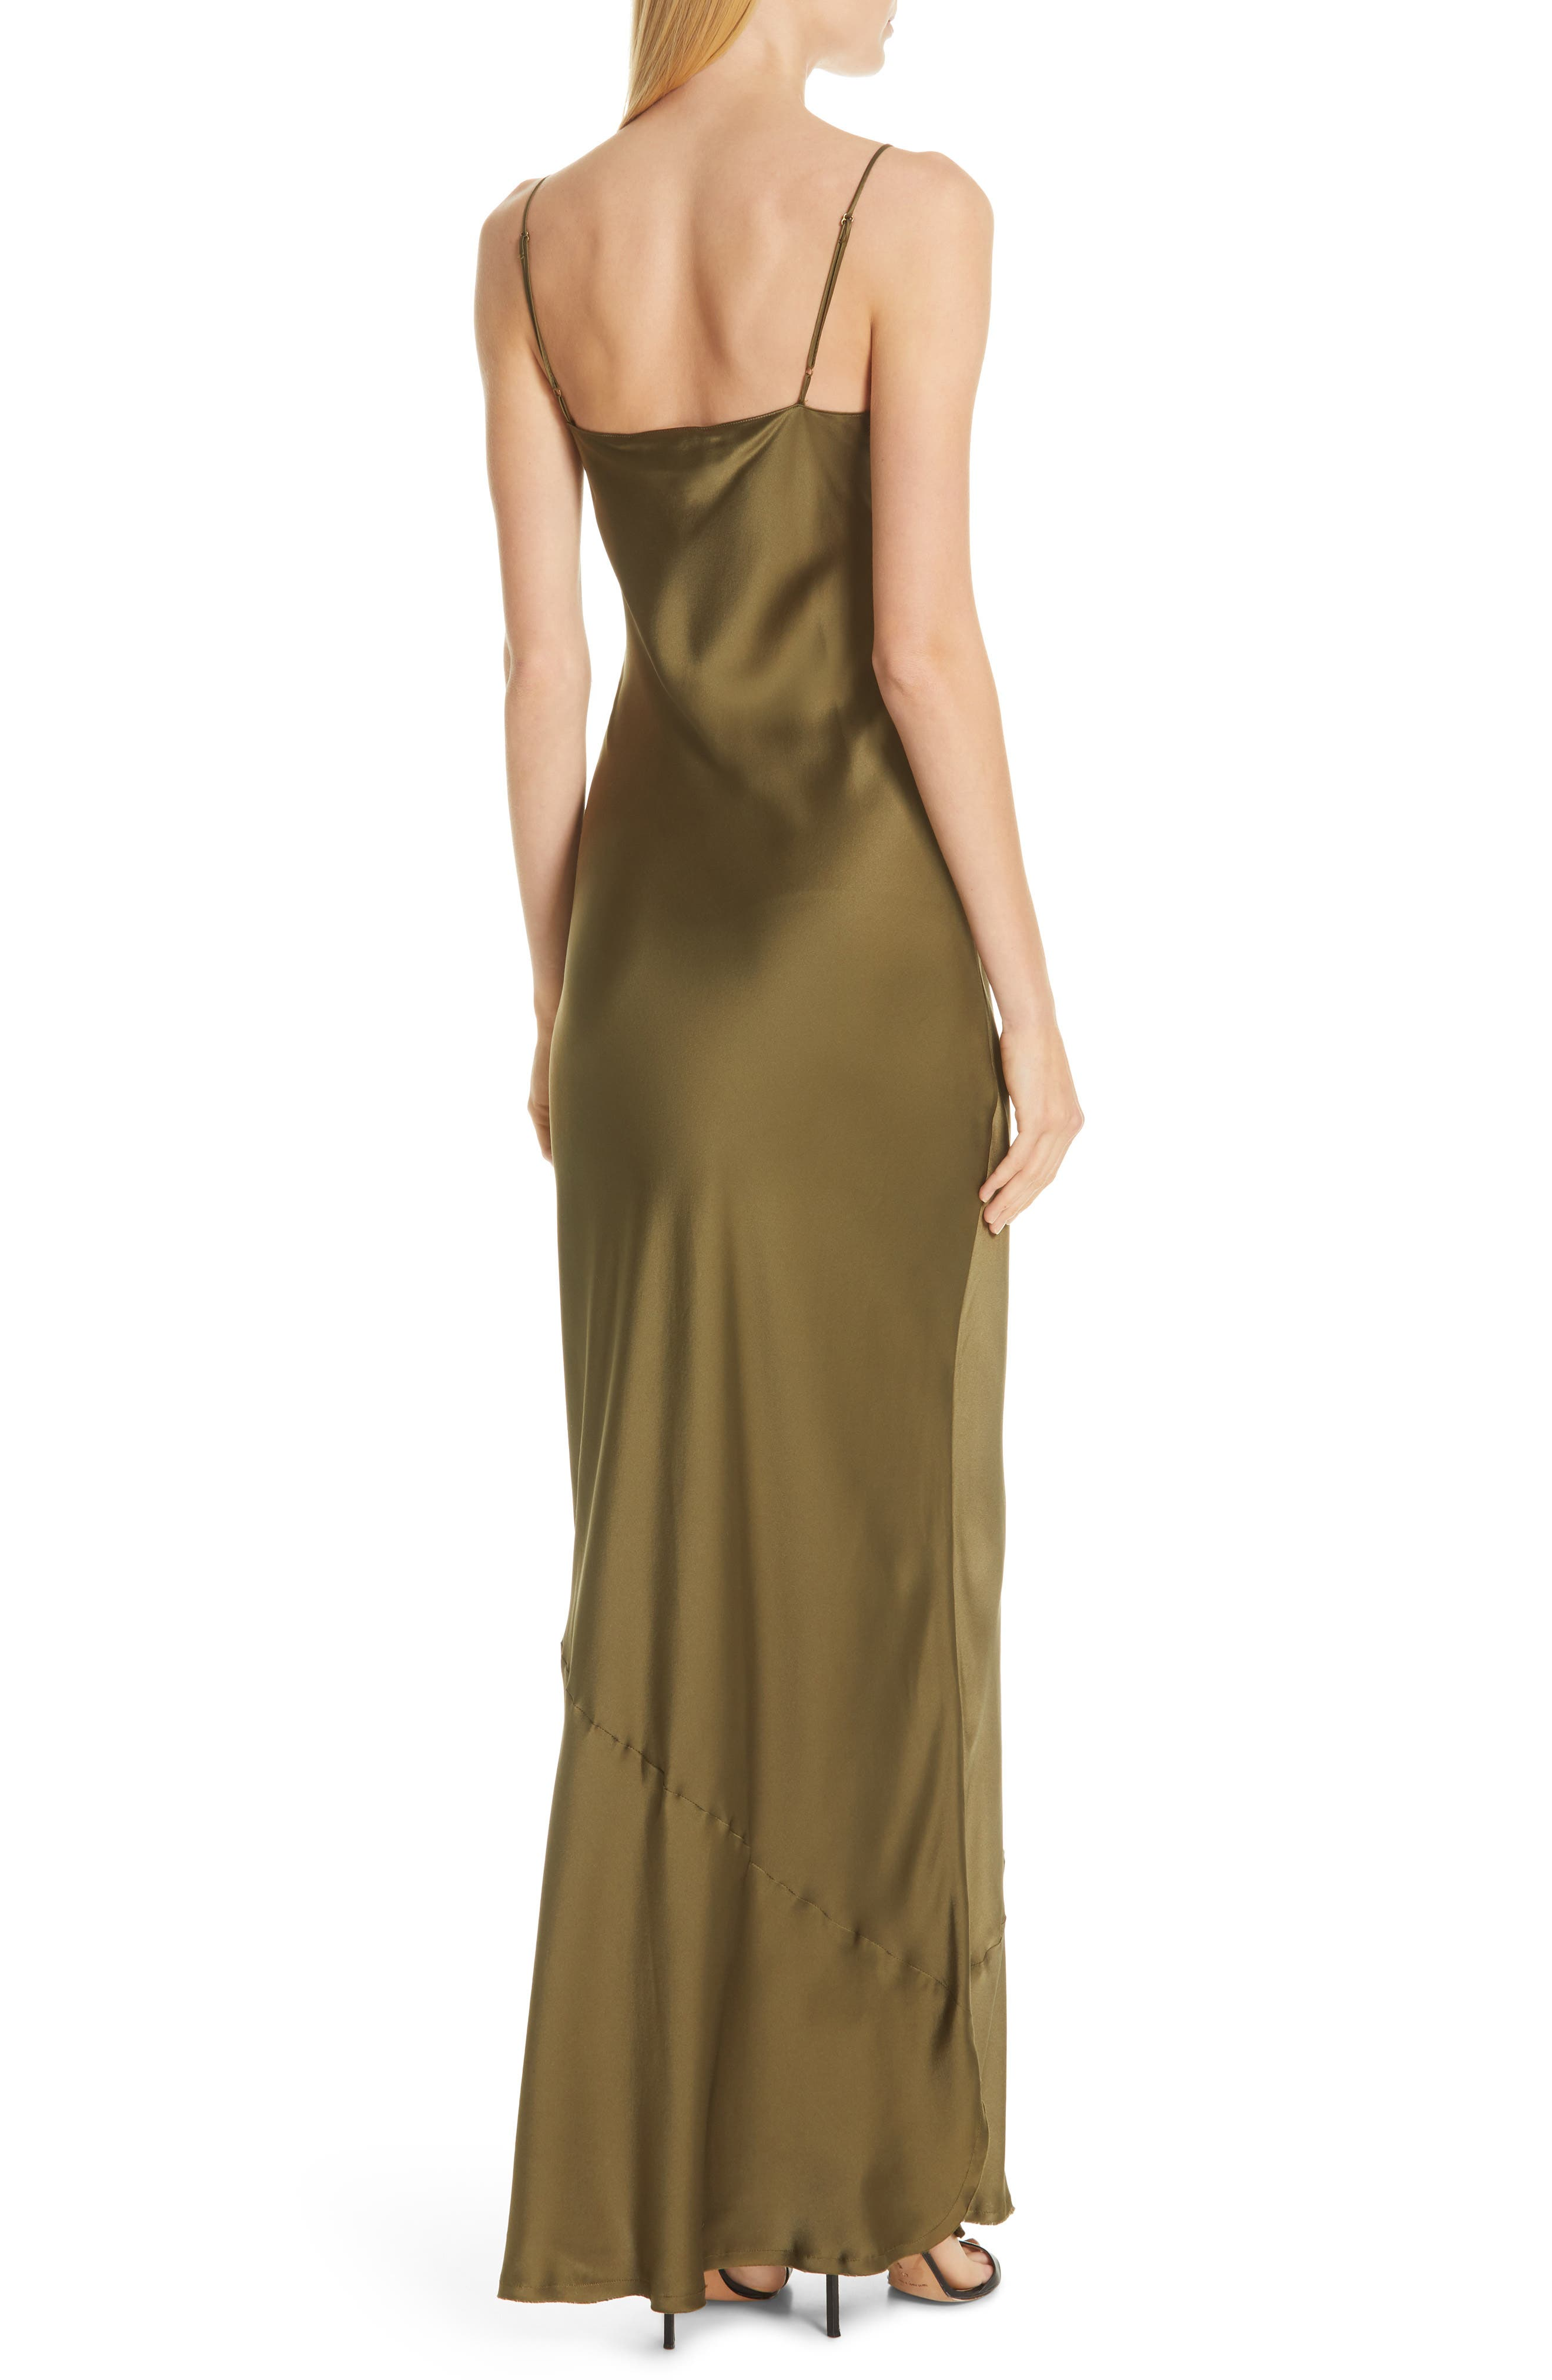 NILI LOTAN, Silk Camisole Gown, Alternate thumbnail 2, color, OLIVE